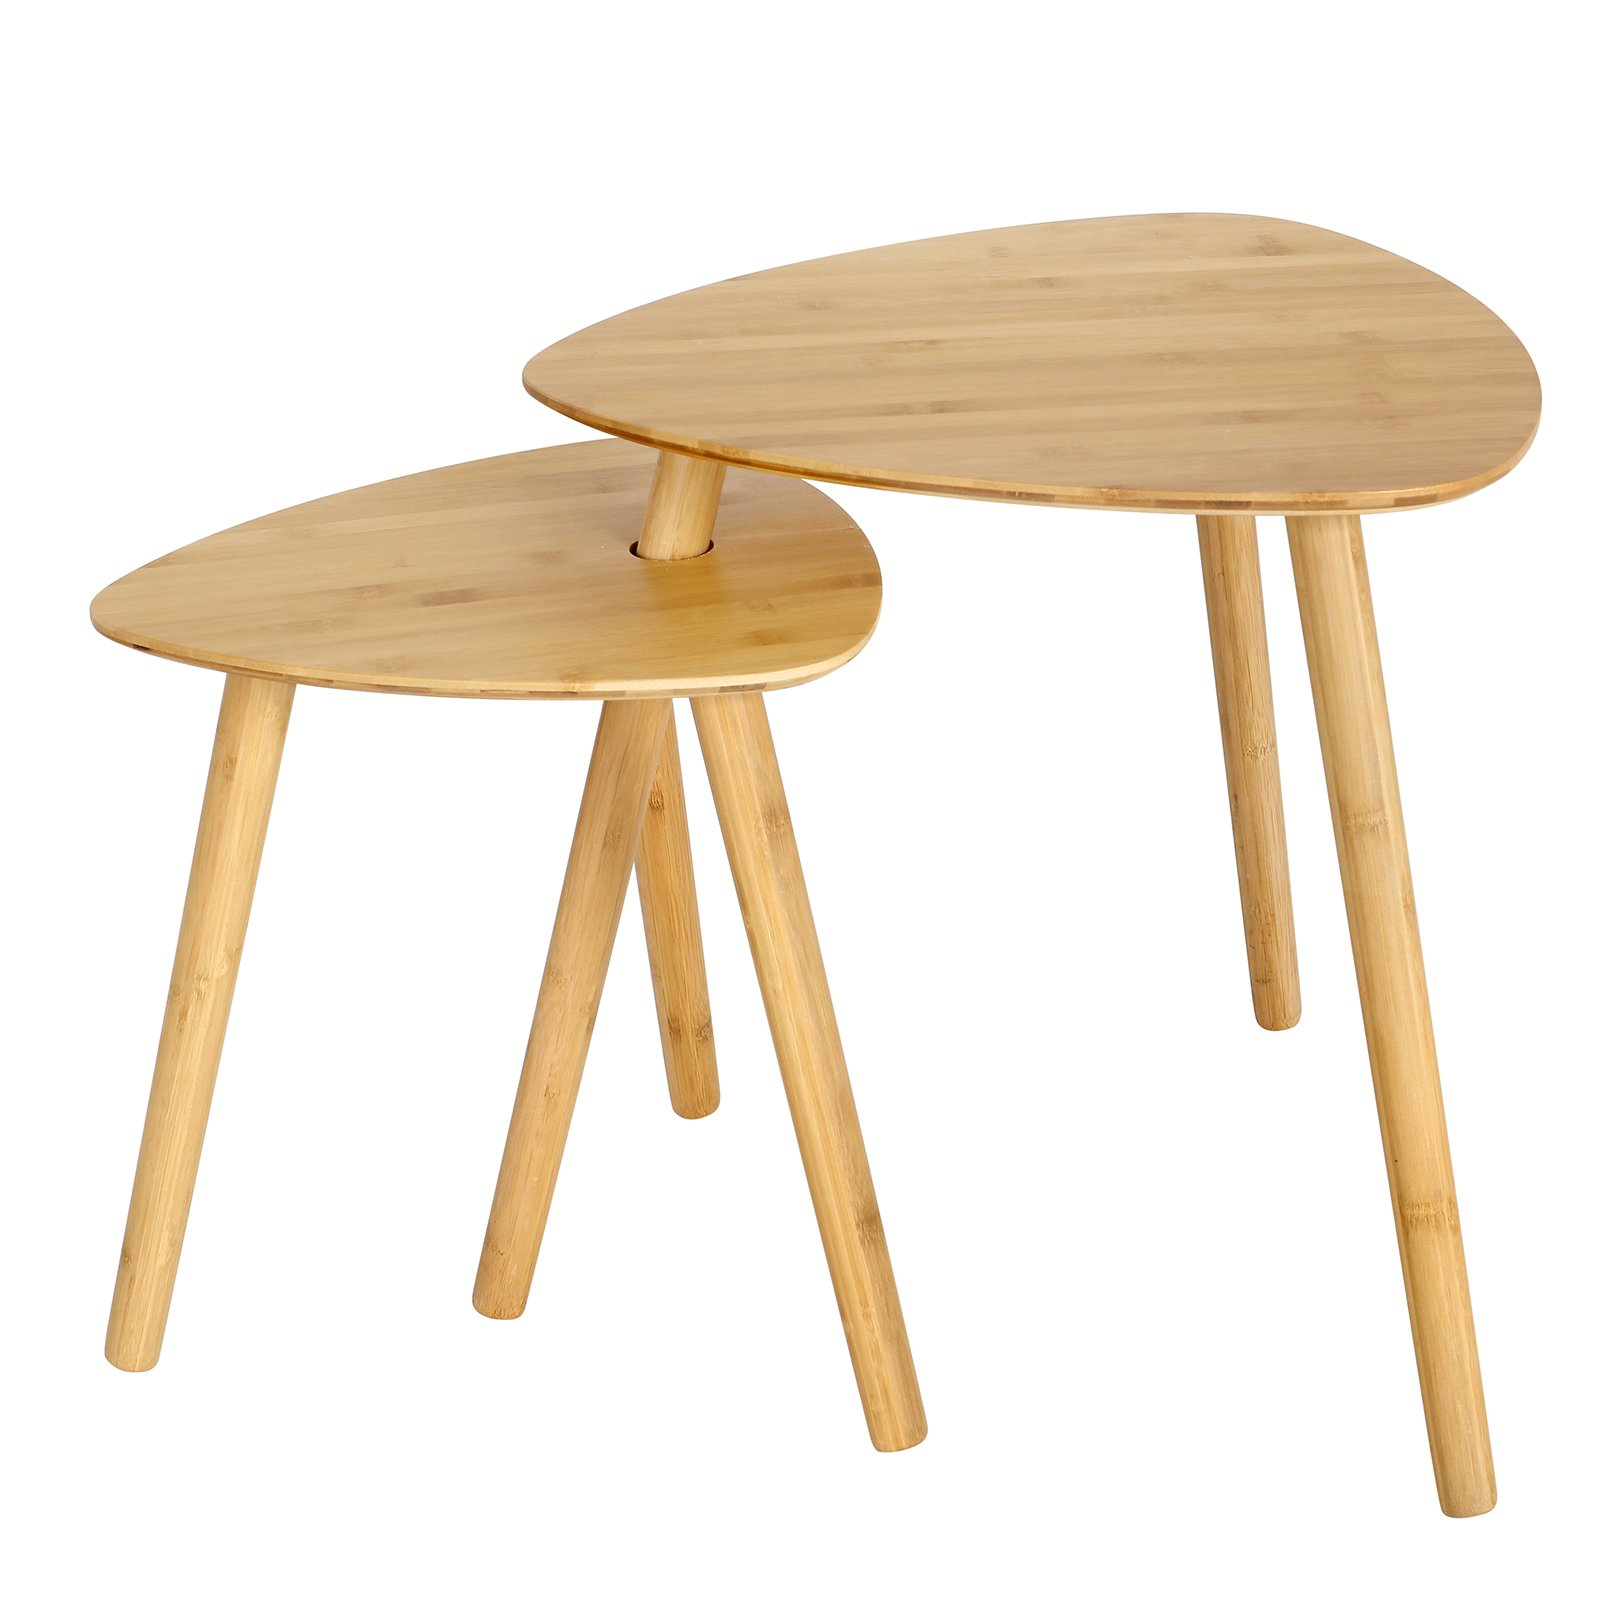 SONGMICS Bamboo Nesting Coffee Side Scandinavian End Tables(Set of 2)Modern Decor Side Table for Home and Office, 100% Sturdy Bamboo Wood Natural ULNT352N